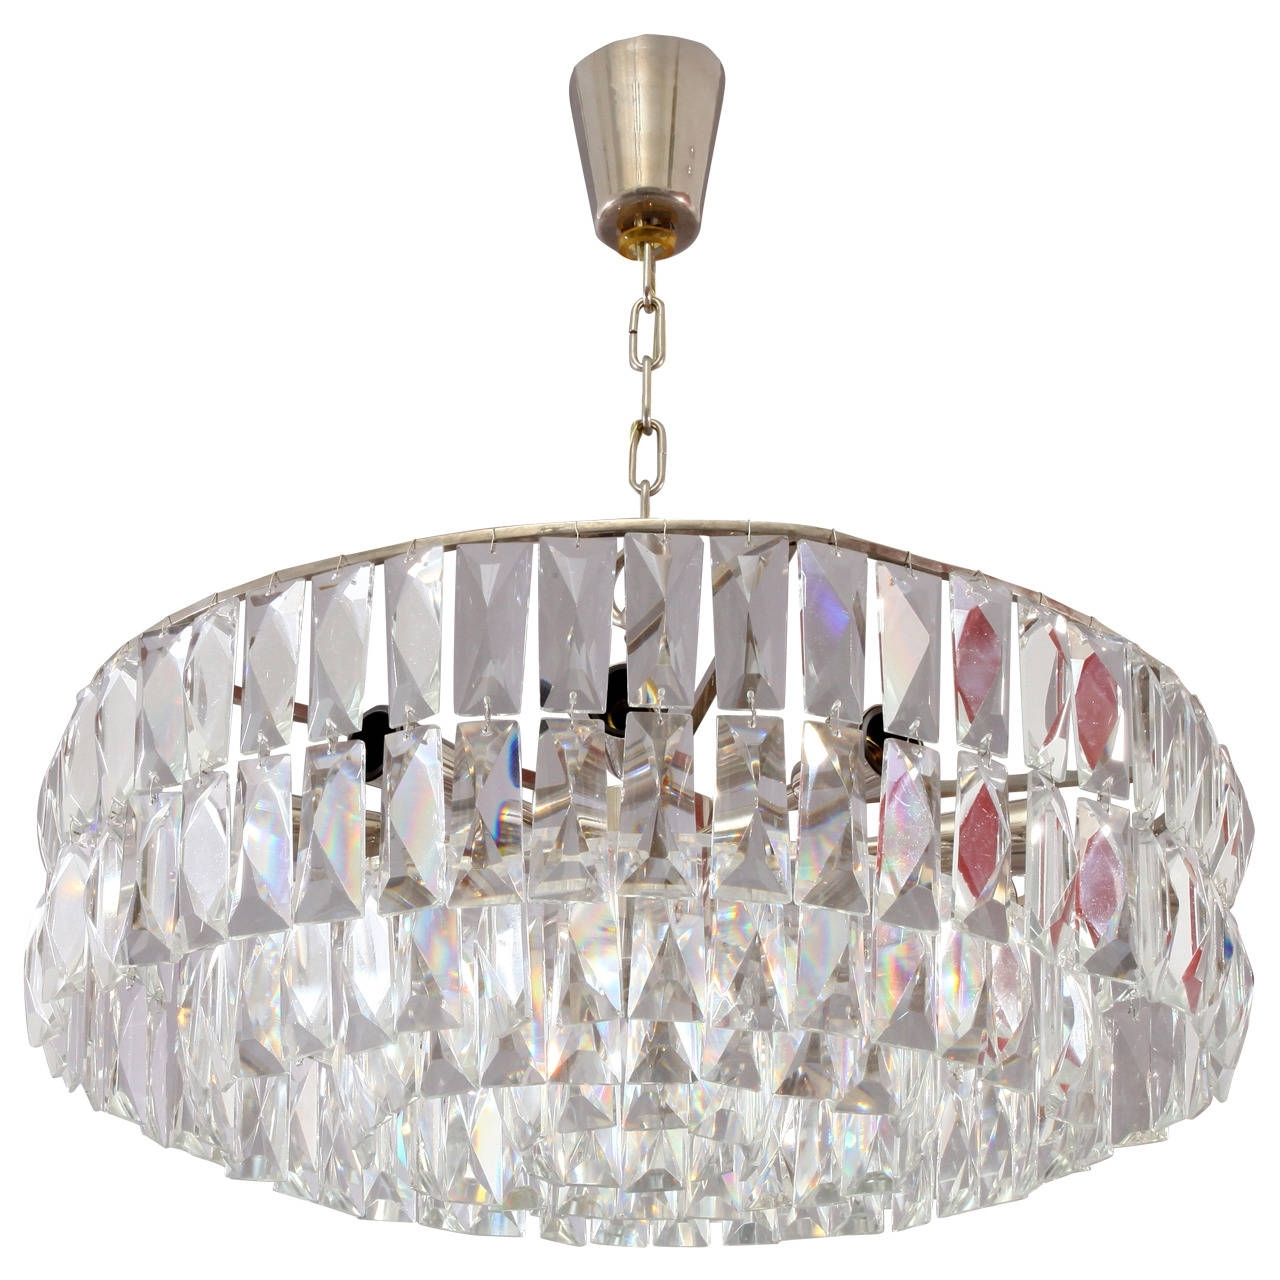 Newest Stunning Chandelier With Large Crystalsbakalowits And Sohne Throughout Vienna Crystal Chandeliers (View 6 of 20)